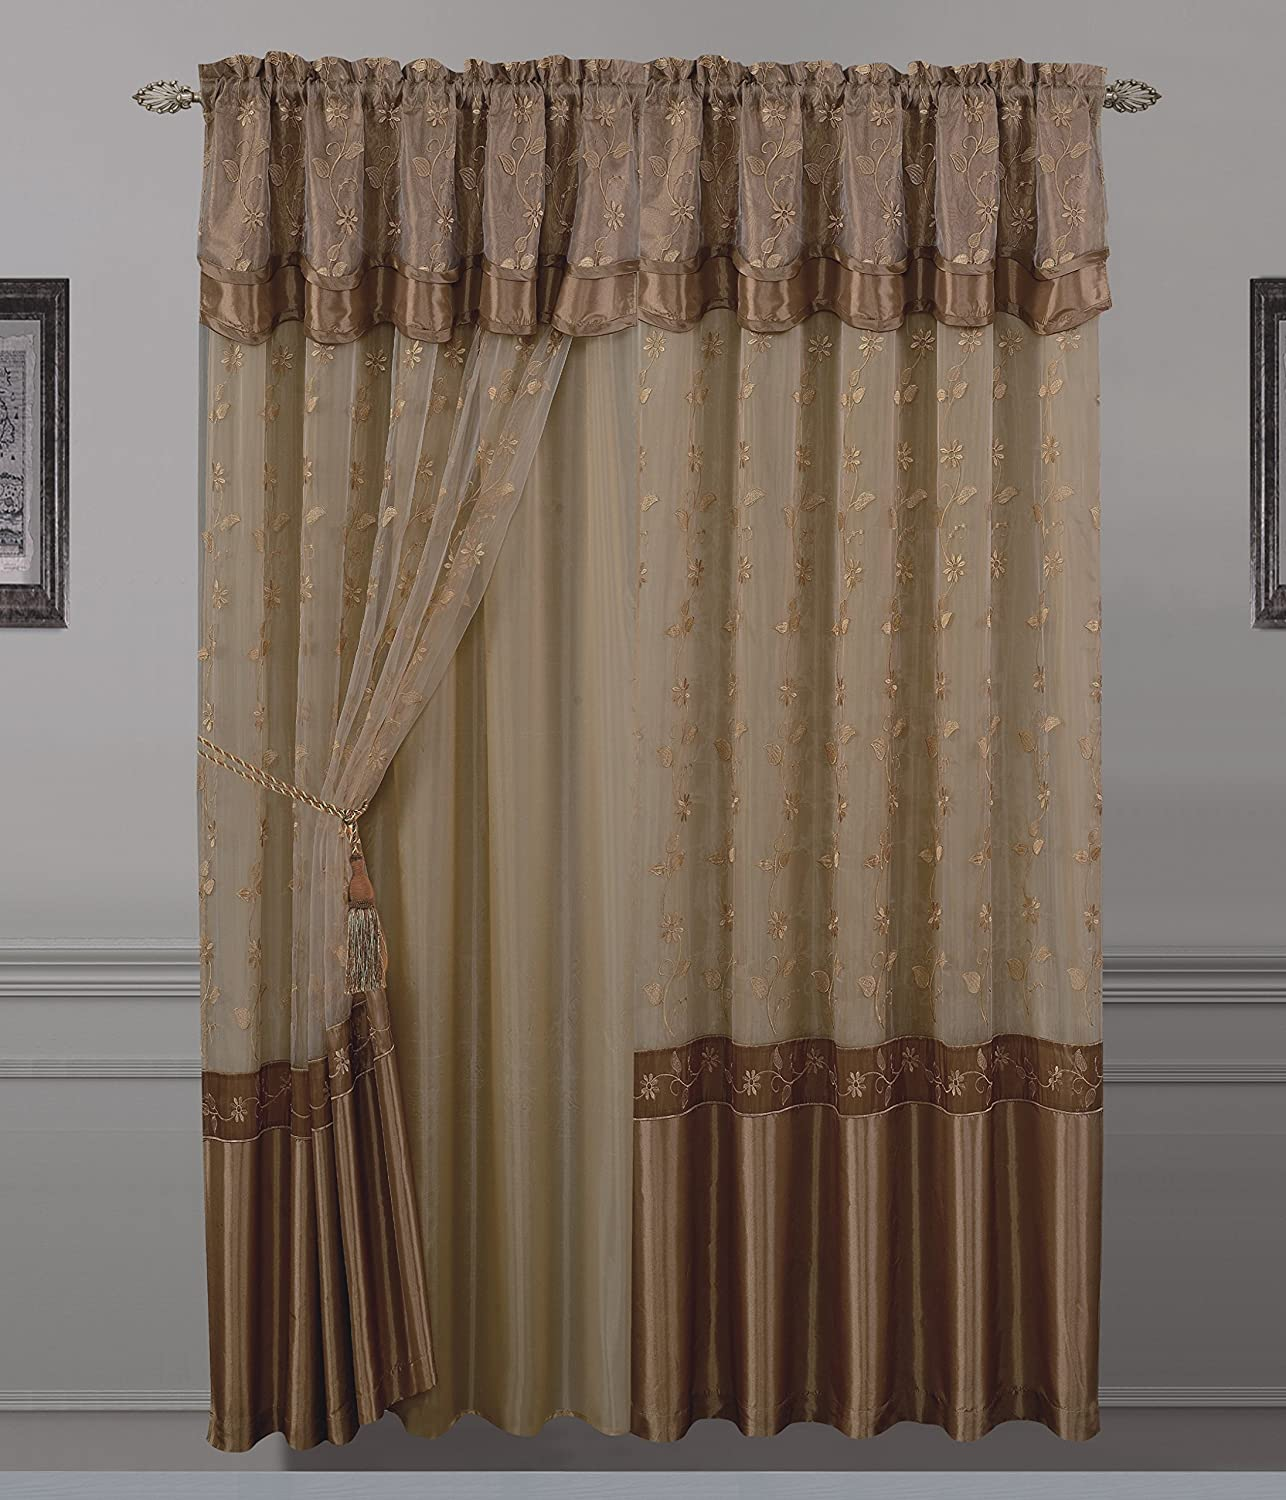 All American Collection New 1 Panel Embroidered Curtain with Attached Valance and Sheer Backing Gold